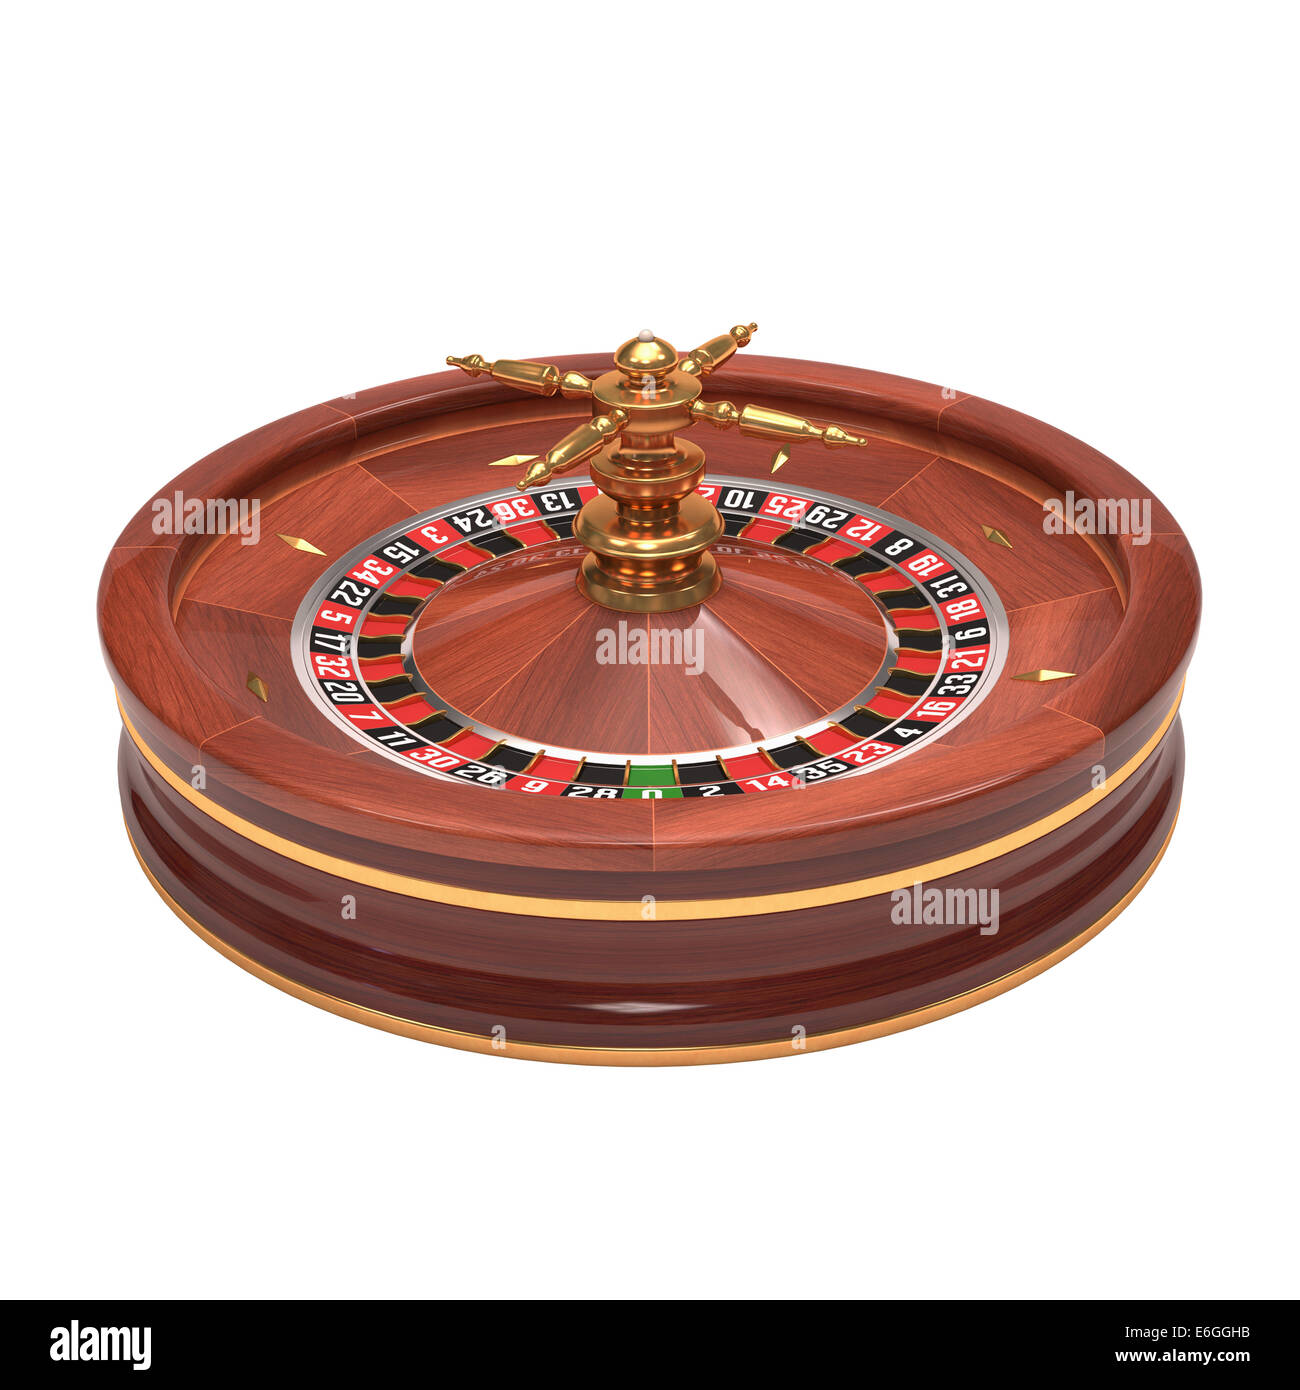 Roulette gambling on white background. Clipping path included. - Stock Image